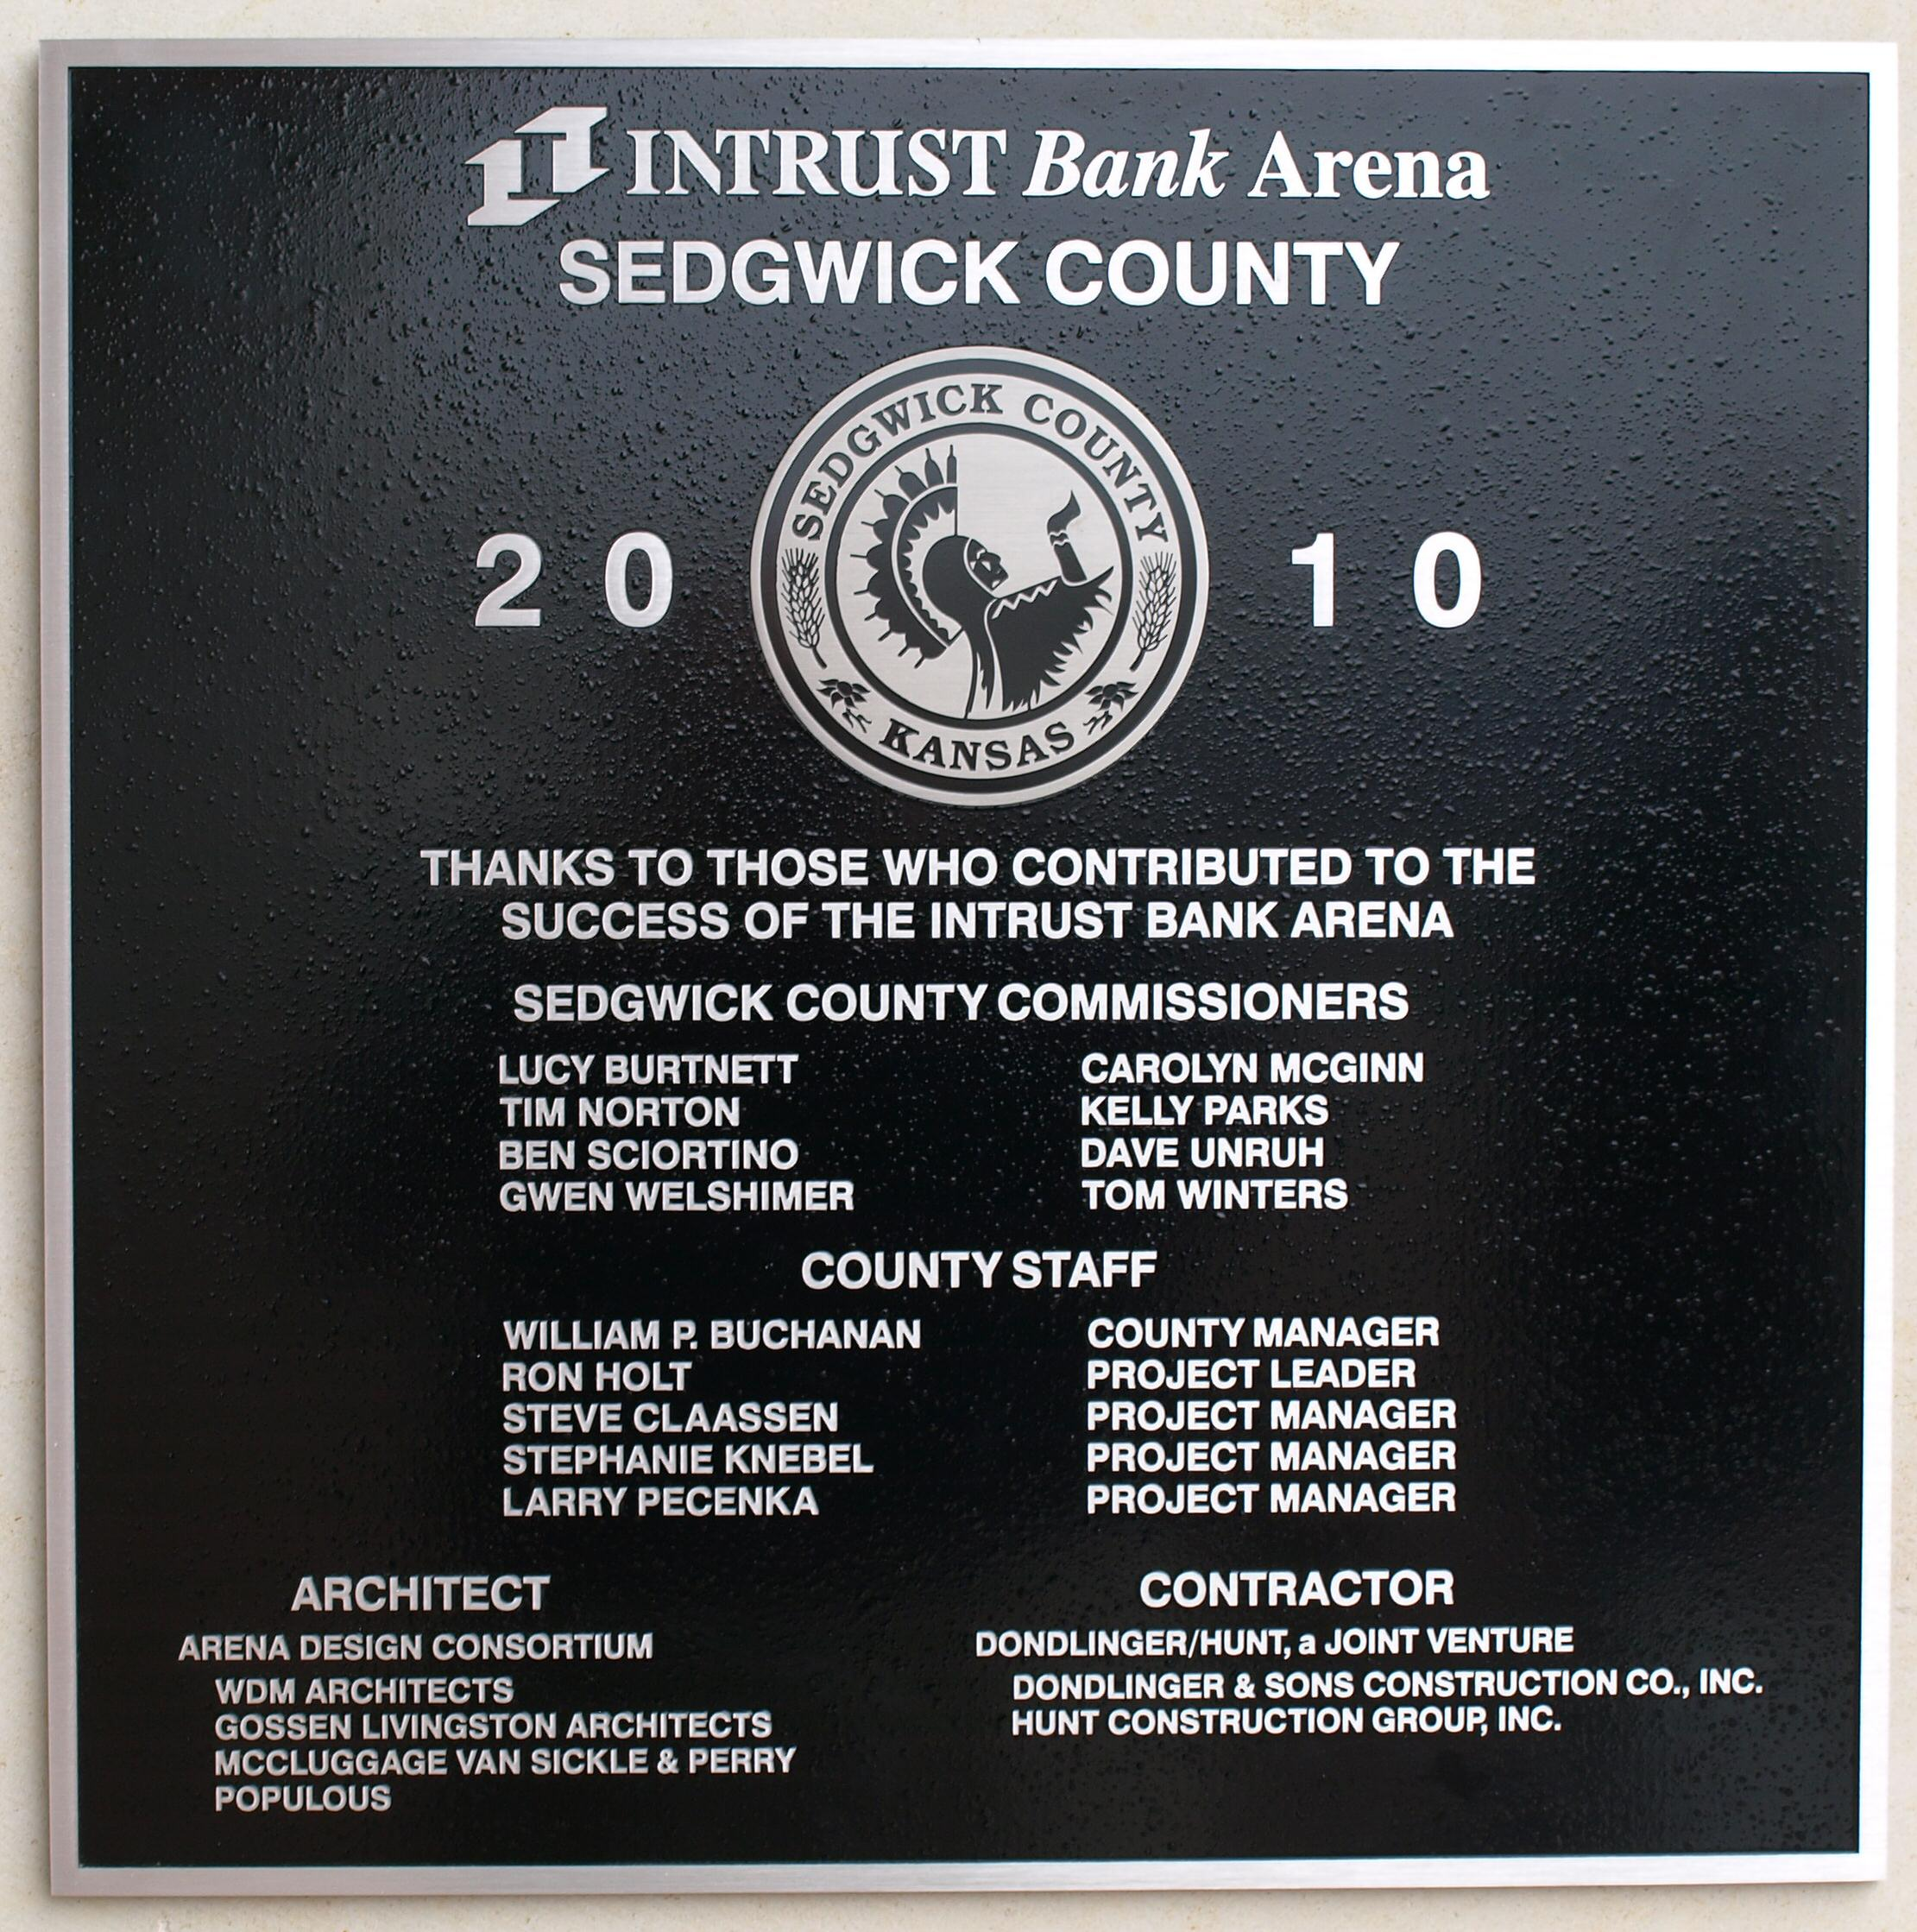 Intrust Bank Arena: Not accounted for like a business